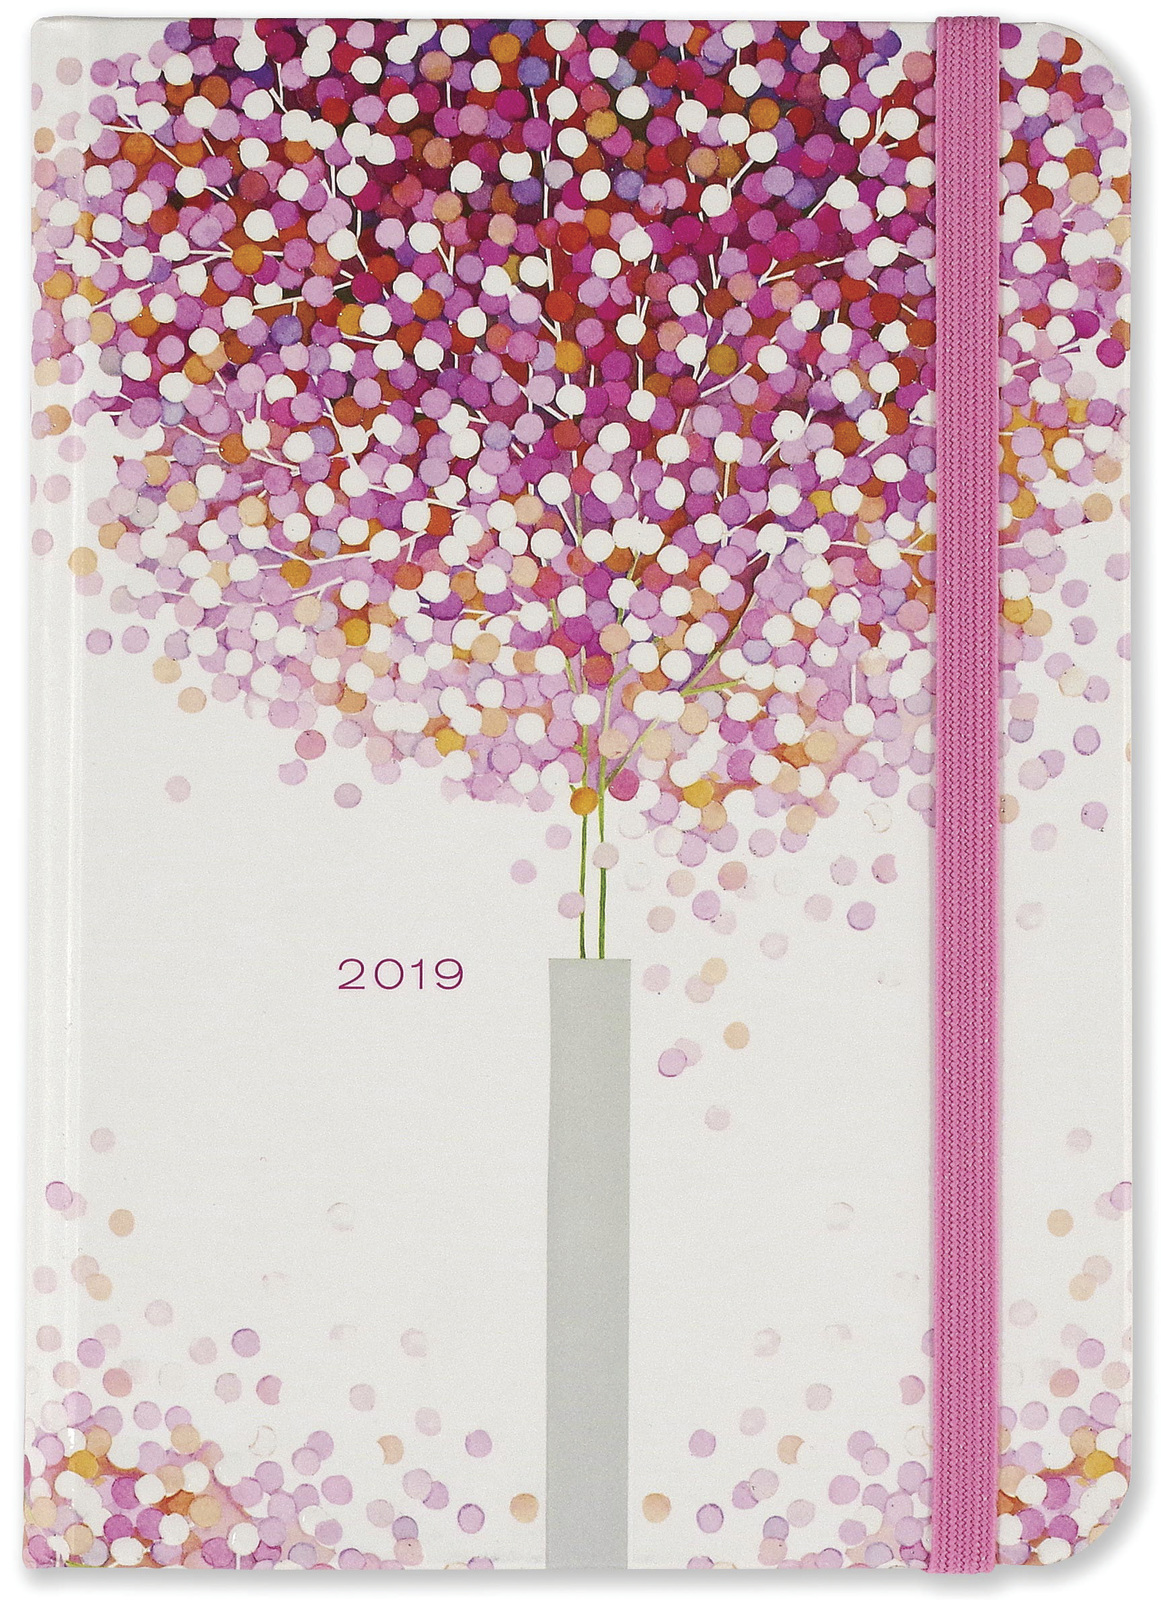 Peter Pauper: Lollipop 16 Month 2019 Compact Diary image